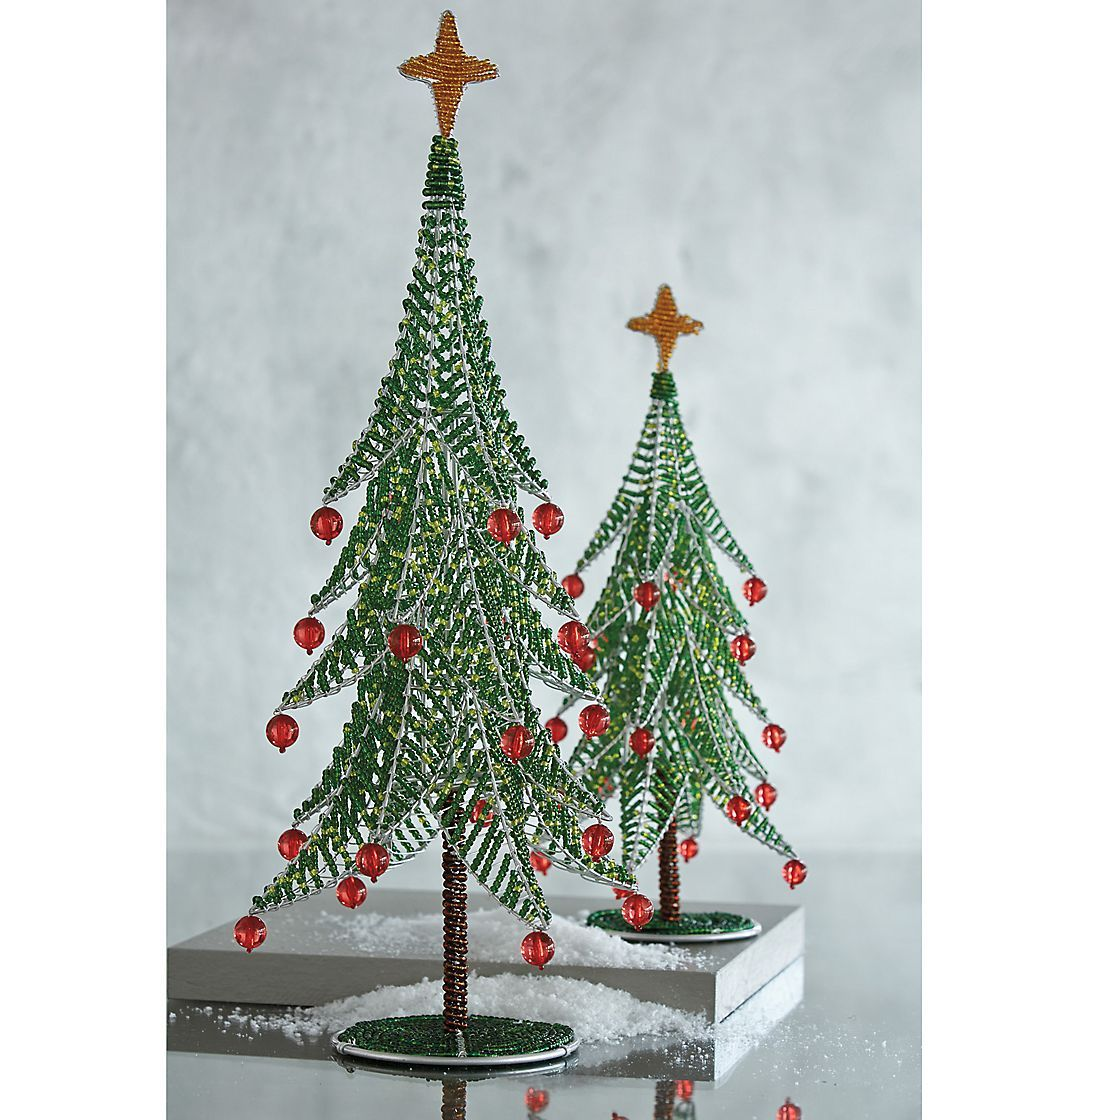 Decorate Christmas Tree With Beads: Beaded Christmas Tree Decorations